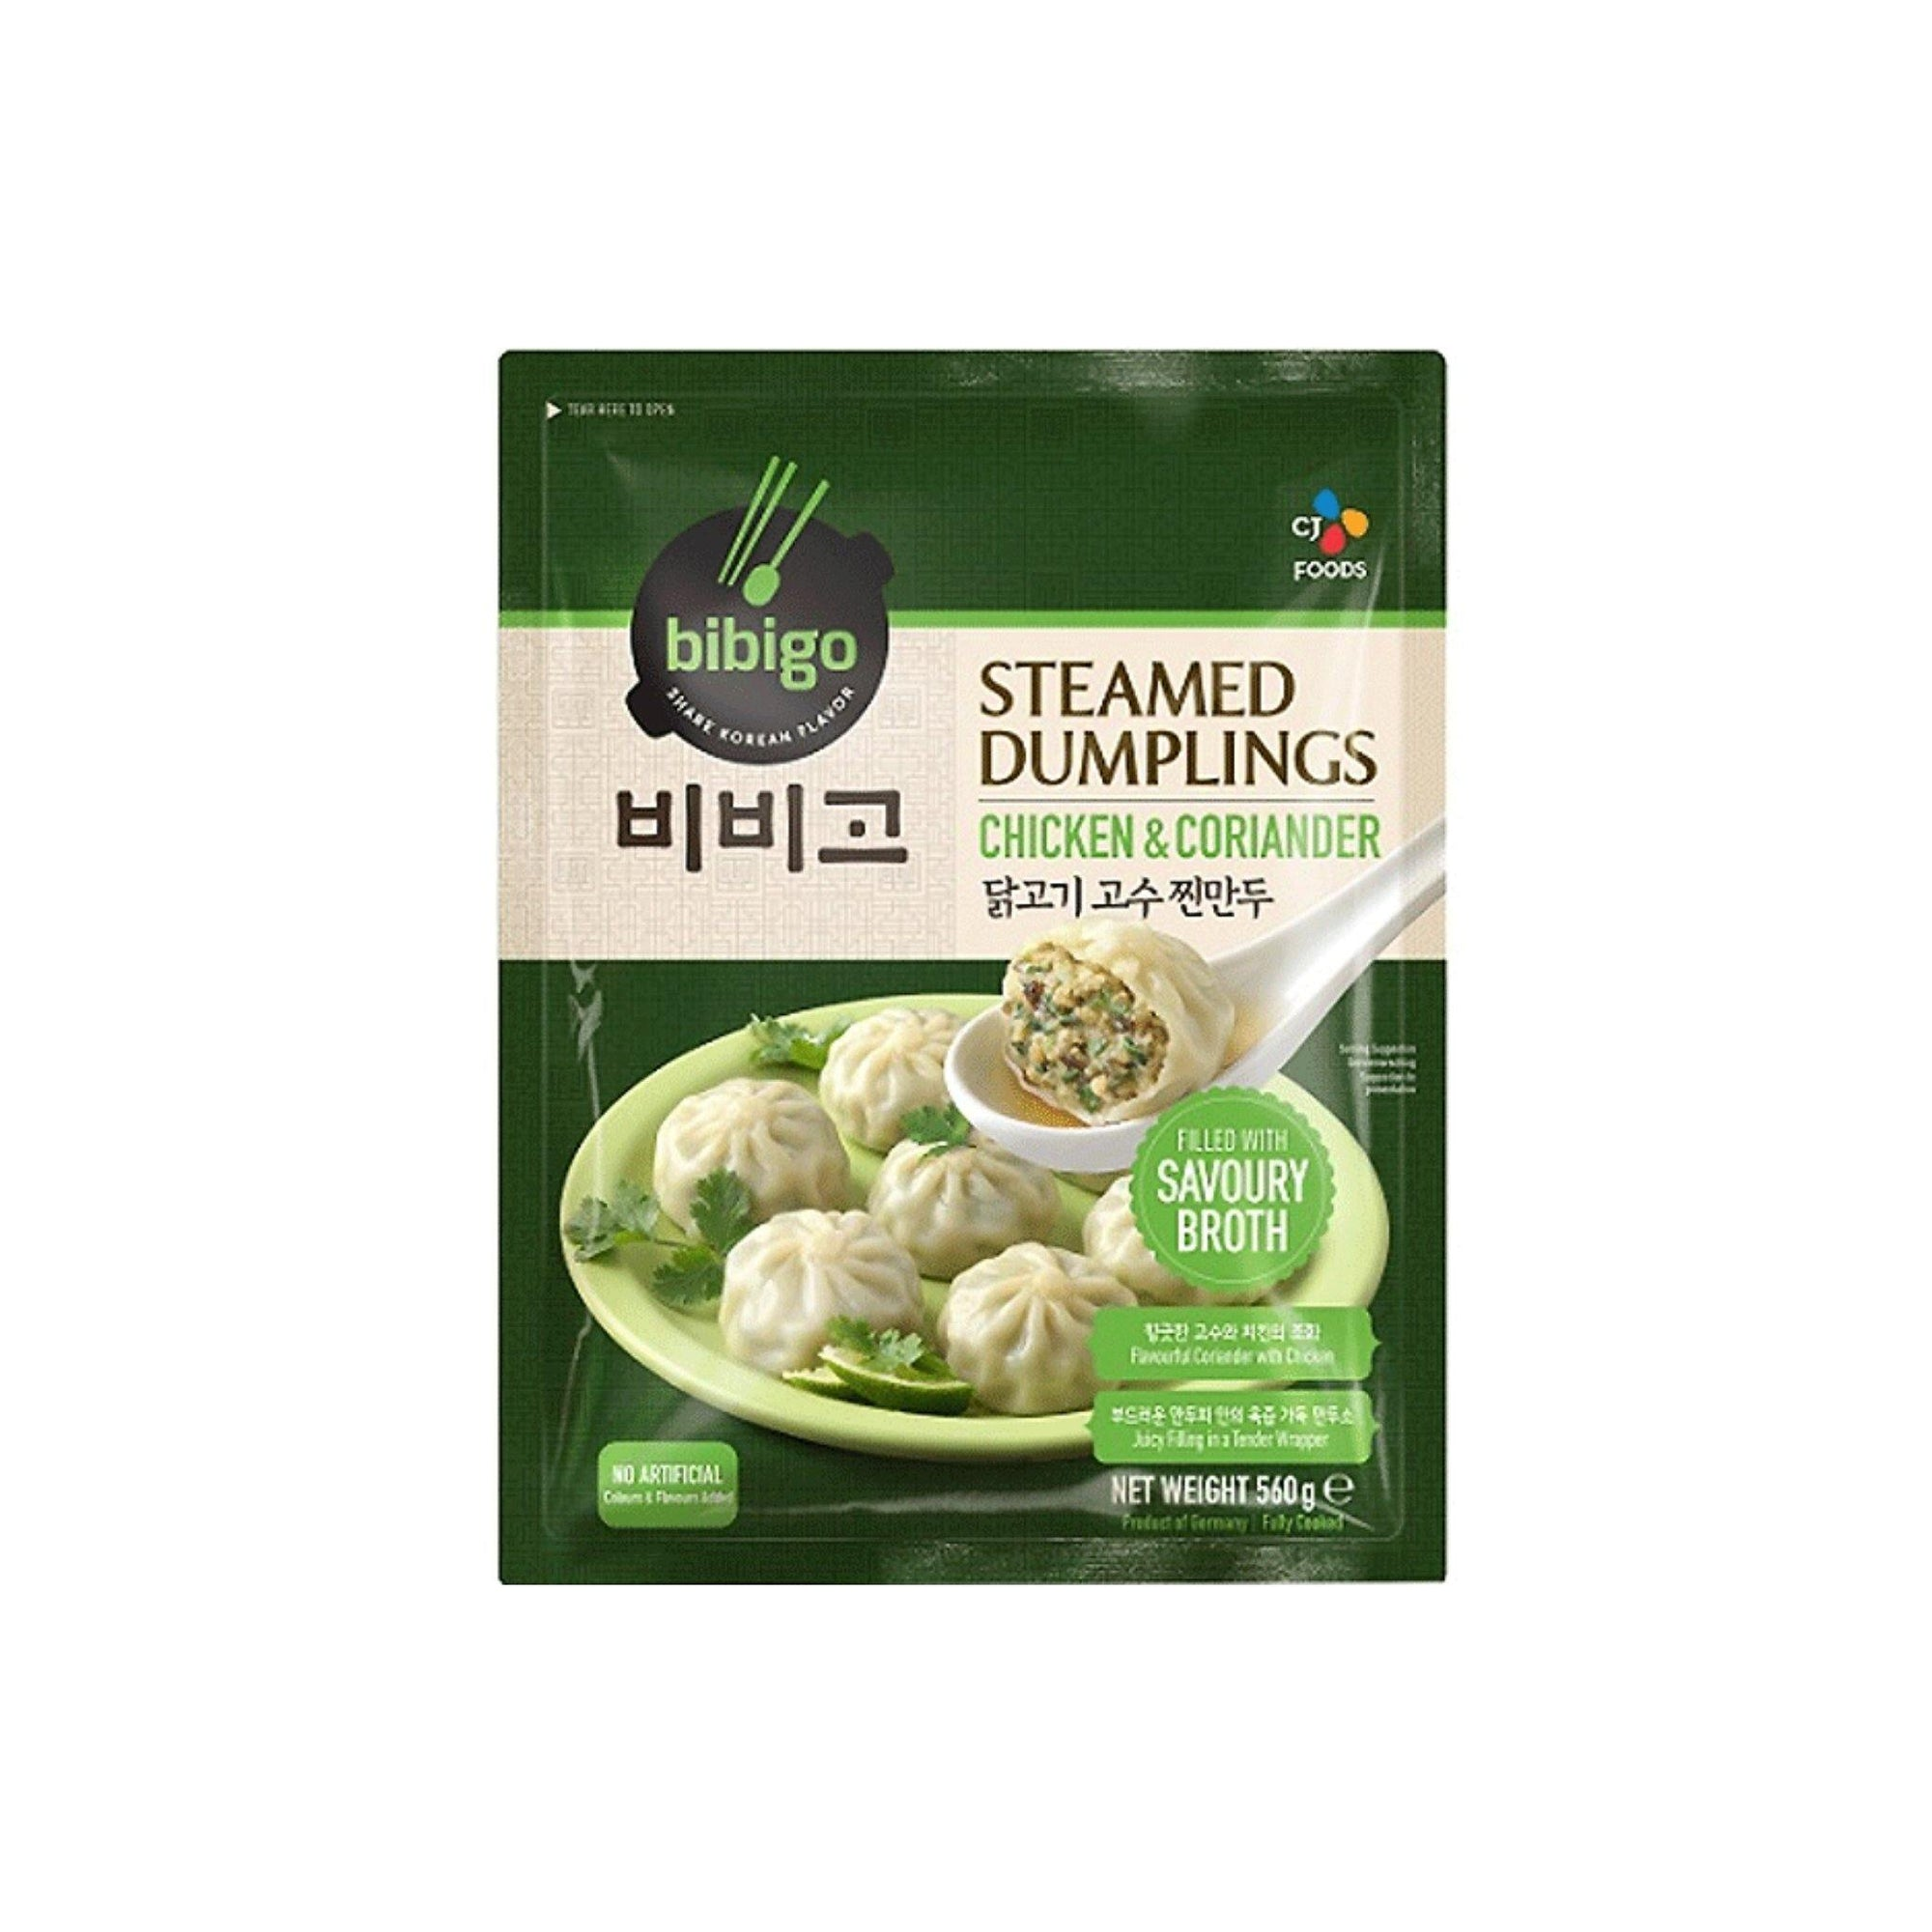 Bibigo Chicken and Coriander Steamed Dumpling 560G - Asian Harvest